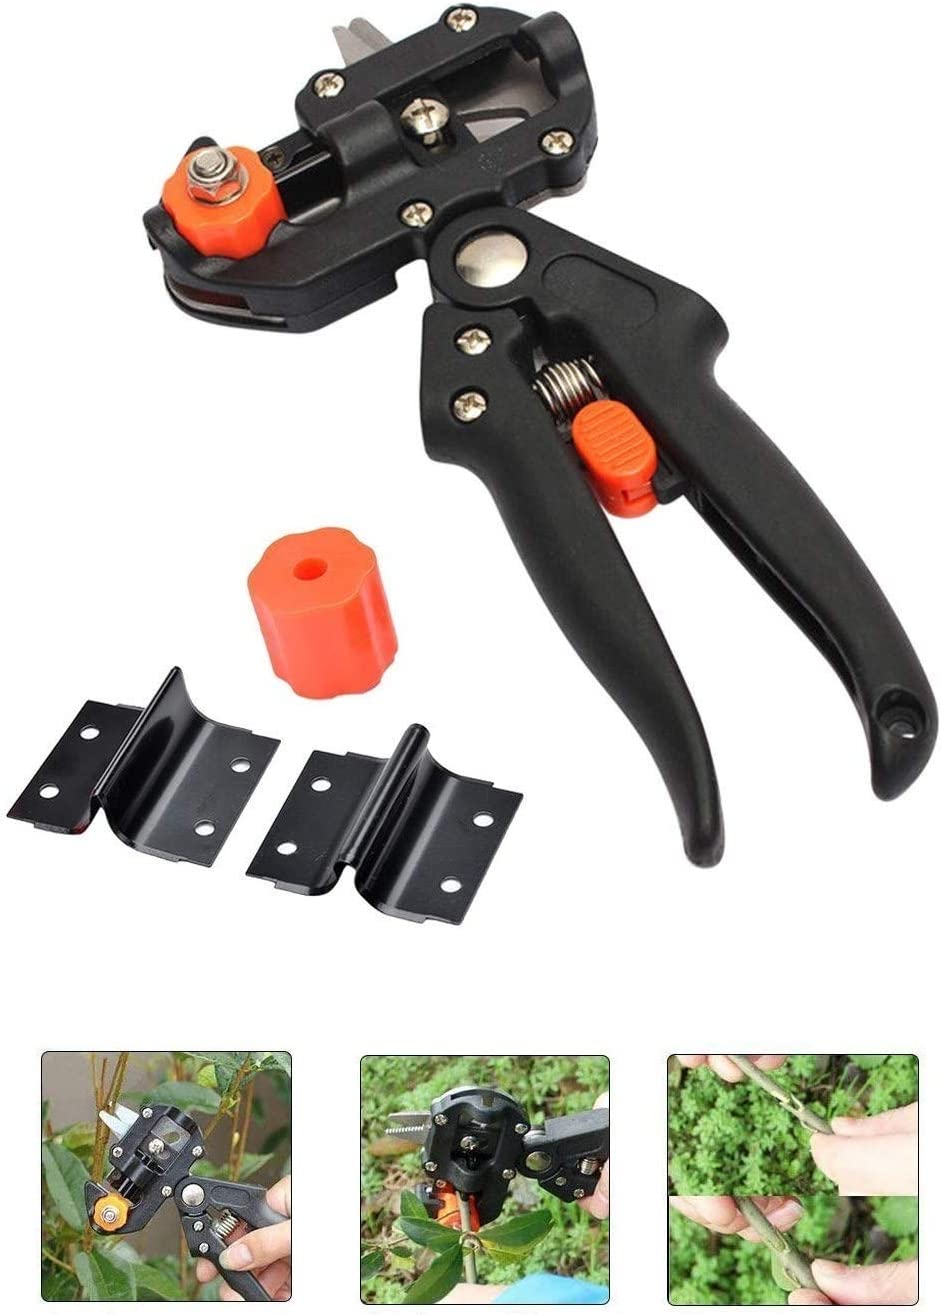 Skypearll 2-in-1 Garden Grafting Tools Pruner Kit, V-Graft Omega-Graft and U-Graft Blades, Grafting Knife Prune Shear Snip Use for Garden Plant Branch Vine Fruit Tree with Replaceable Blades (Black)